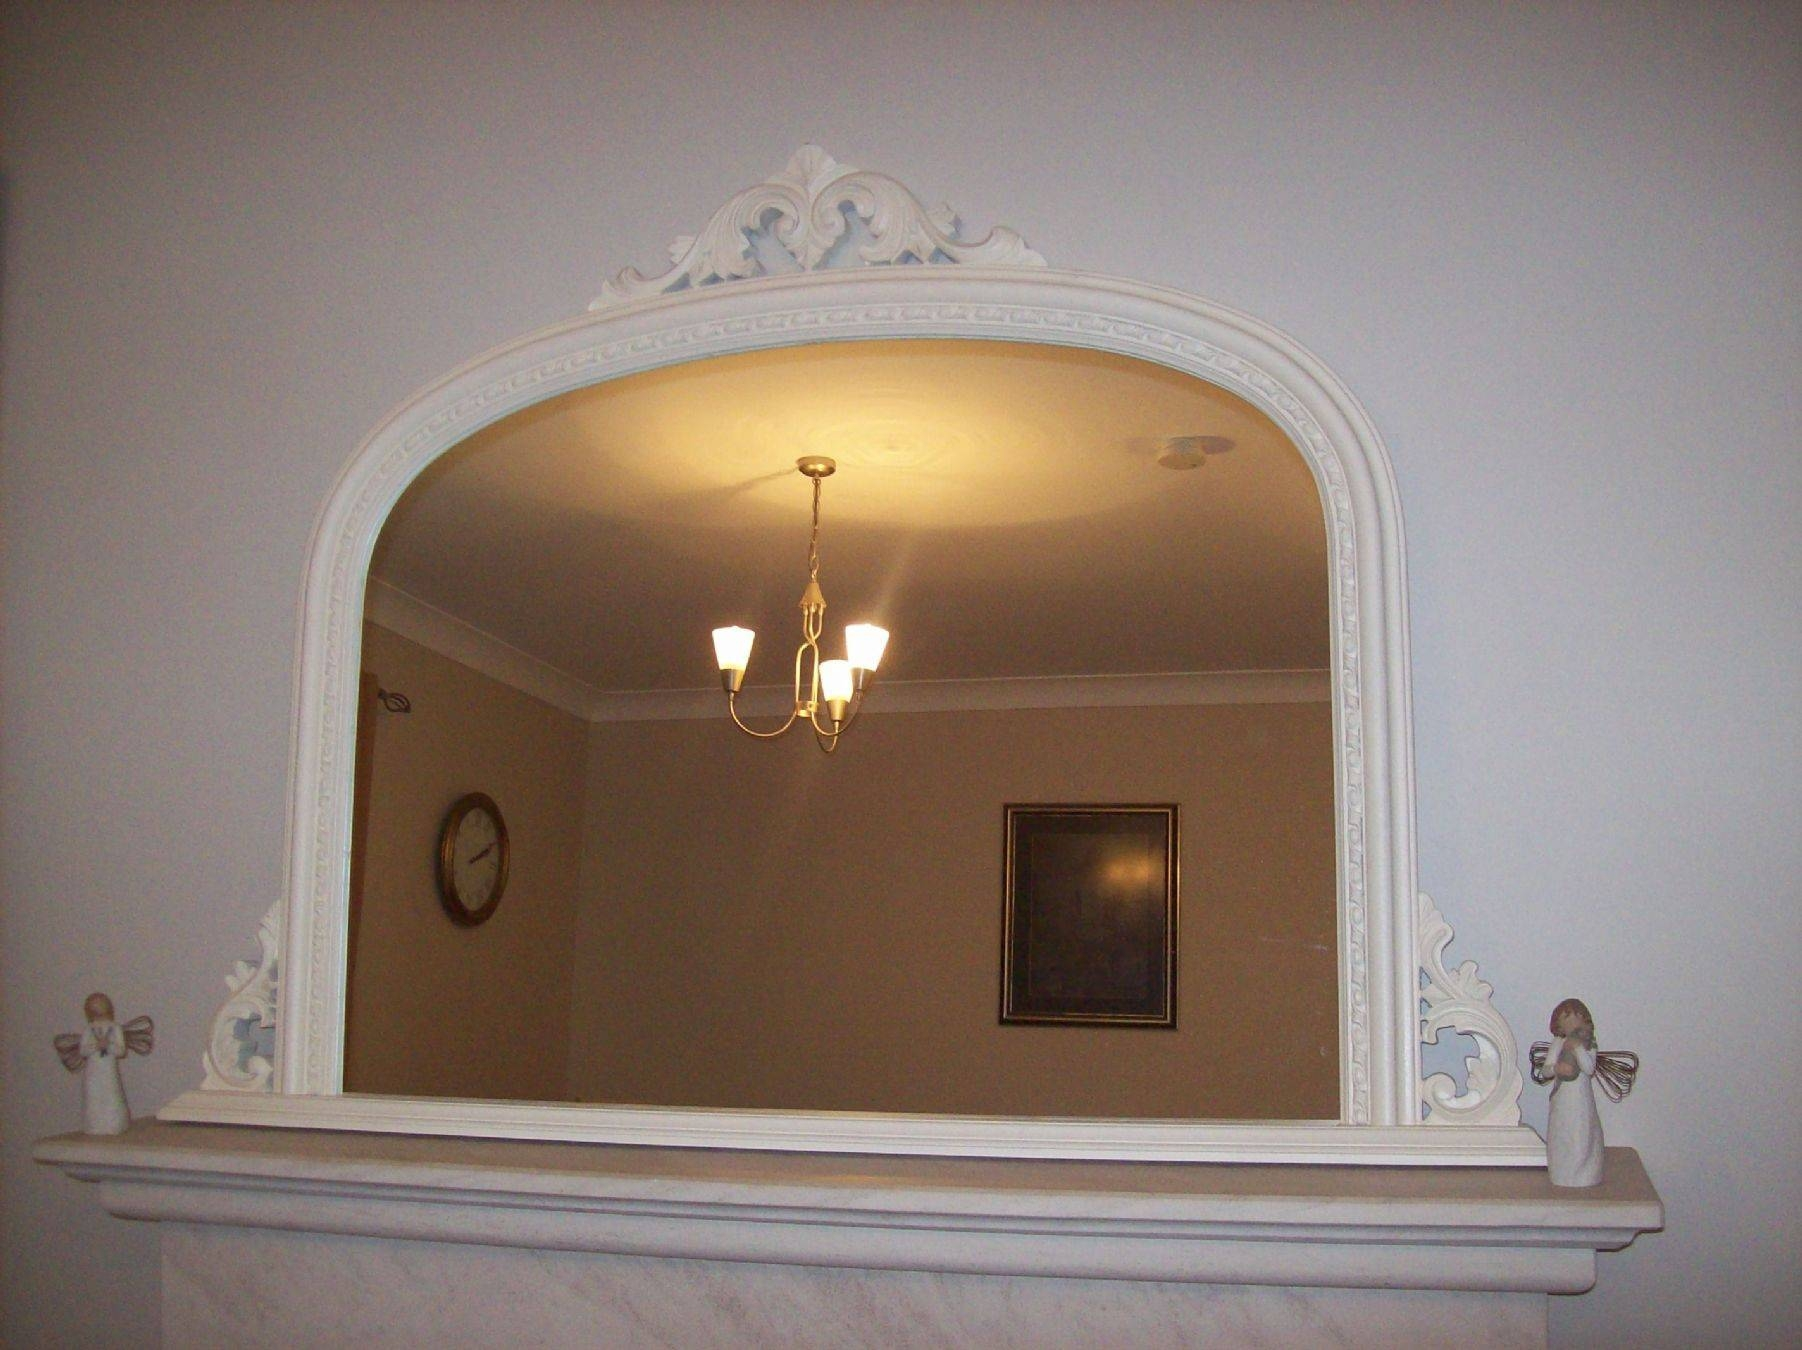 Cream Ornate Overmantle Mirror 4 throughout Over Mantle Mirrors (Image 5 of 15)